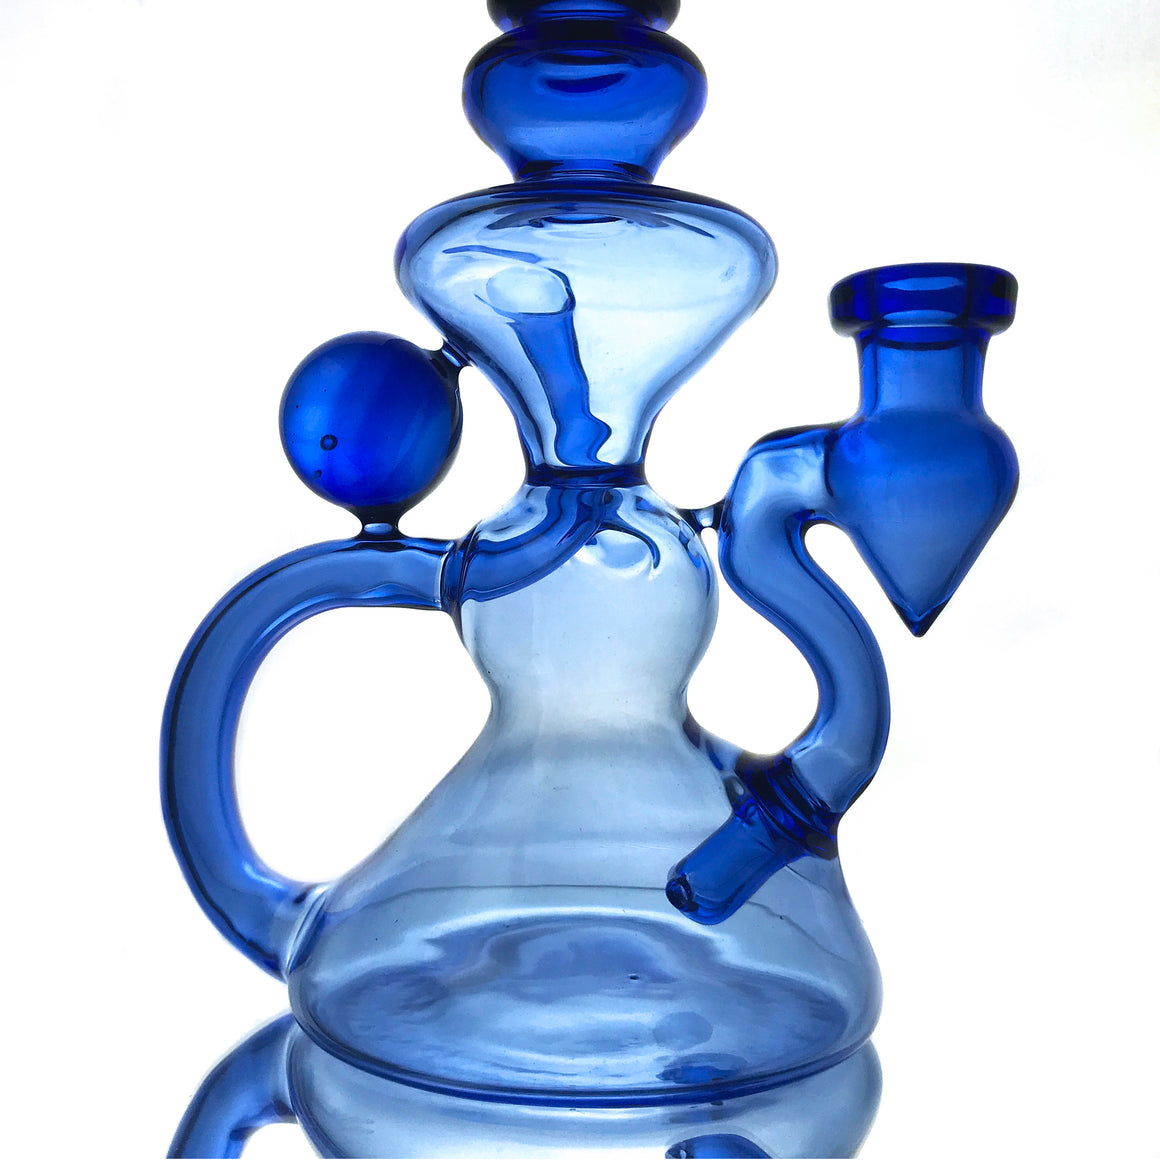 Fully-worked Klein Recycler - Blue Dream - 14mm Female